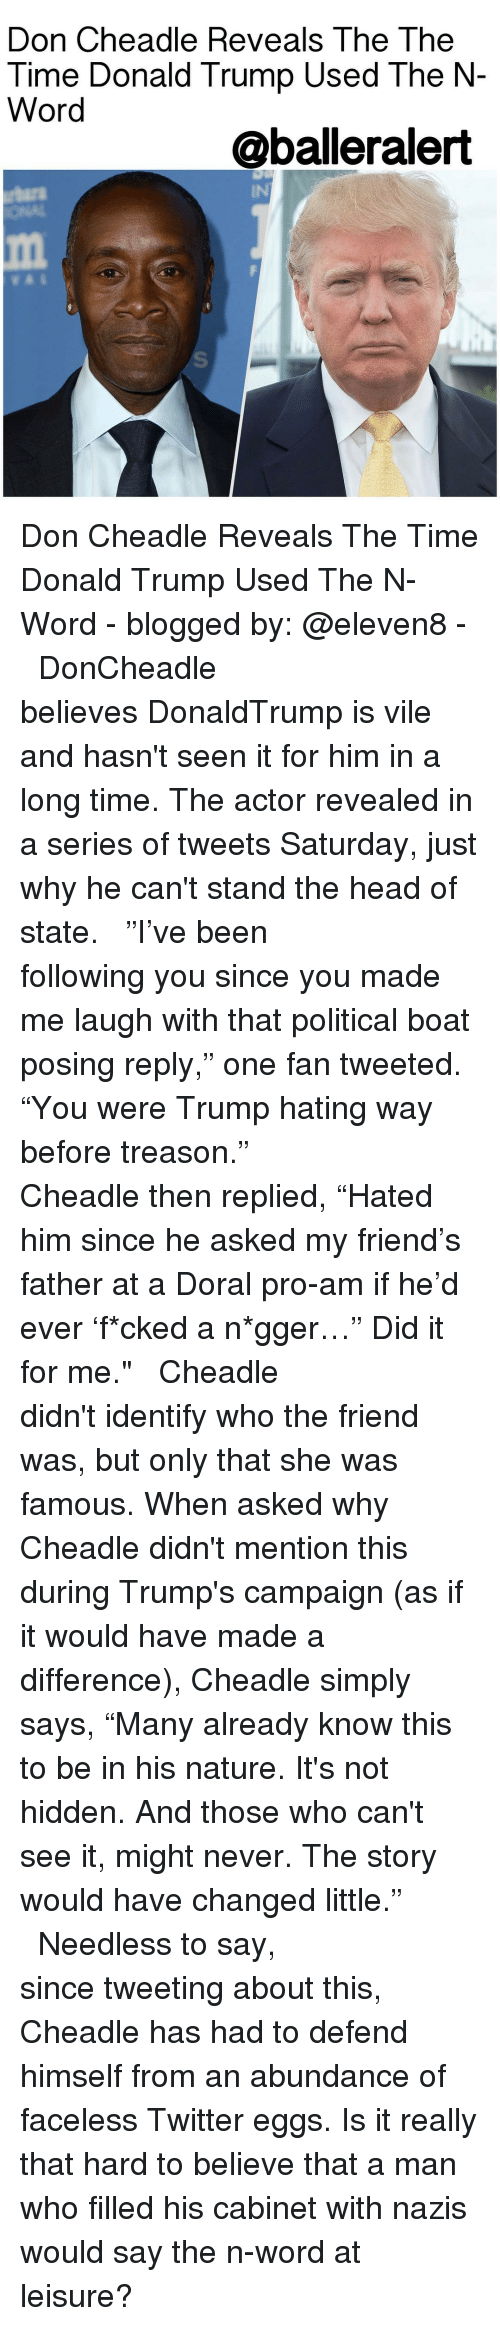 "Memes, Treason, and Boat: Don Cheadle Reveals The The  Time Donald Trump Used The N  Word  @balleralert Don Cheadle Reveals The Time Donald Trump Used The N-Word - blogged by: @eleven8 - ⠀⠀⠀⠀⠀⠀⠀⠀⠀ ⠀⠀⠀⠀⠀⠀⠀⠀⠀ DonCheadle believes DonaldTrump is vile and hasn't seen it for him in a long time. The actor revealed in a series of tweets Saturday, just why he can't stand the head of state. ⠀⠀⠀⠀⠀⠀⠀⠀⠀ ⠀⠀⠀⠀⠀⠀⠀⠀⠀ ""I've been following you since you made me laugh with that political boat posing reply,"" one fan tweeted. ""You were Trump hating way before treason."" ⠀⠀⠀⠀⠀⠀⠀⠀⠀ ⠀⠀⠀⠀⠀⠀⠀⠀⠀ Cheadle then replied, ""Hated him since he asked my friend's father at a Doral pro-am if he'd ever 'f*cked a n*gger…"" Did it for me."" ⠀⠀⠀⠀⠀⠀⠀⠀⠀ ⠀⠀⠀⠀⠀⠀⠀⠀⠀ Cheadle didn't identify who the friend was, but only that she was famous. When asked why Cheadle didn't mention this during Trump's campaign (as if it would have made a difference), Cheadle simply says, ""Many already know this to be in his nature. It's not hidden. And those who can't see it, might never. The story would have changed little."" ⠀⠀⠀⠀⠀⠀⠀⠀⠀ ⠀⠀⠀⠀⠀⠀⠀⠀⠀ Needless to say, since tweeting about this, Cheadle has had to defend himself from an abundance of faceless Twitter eggs. Is it really that hard to believe that a man who filled his cabinet with nazis would say the n-word at leisure?"